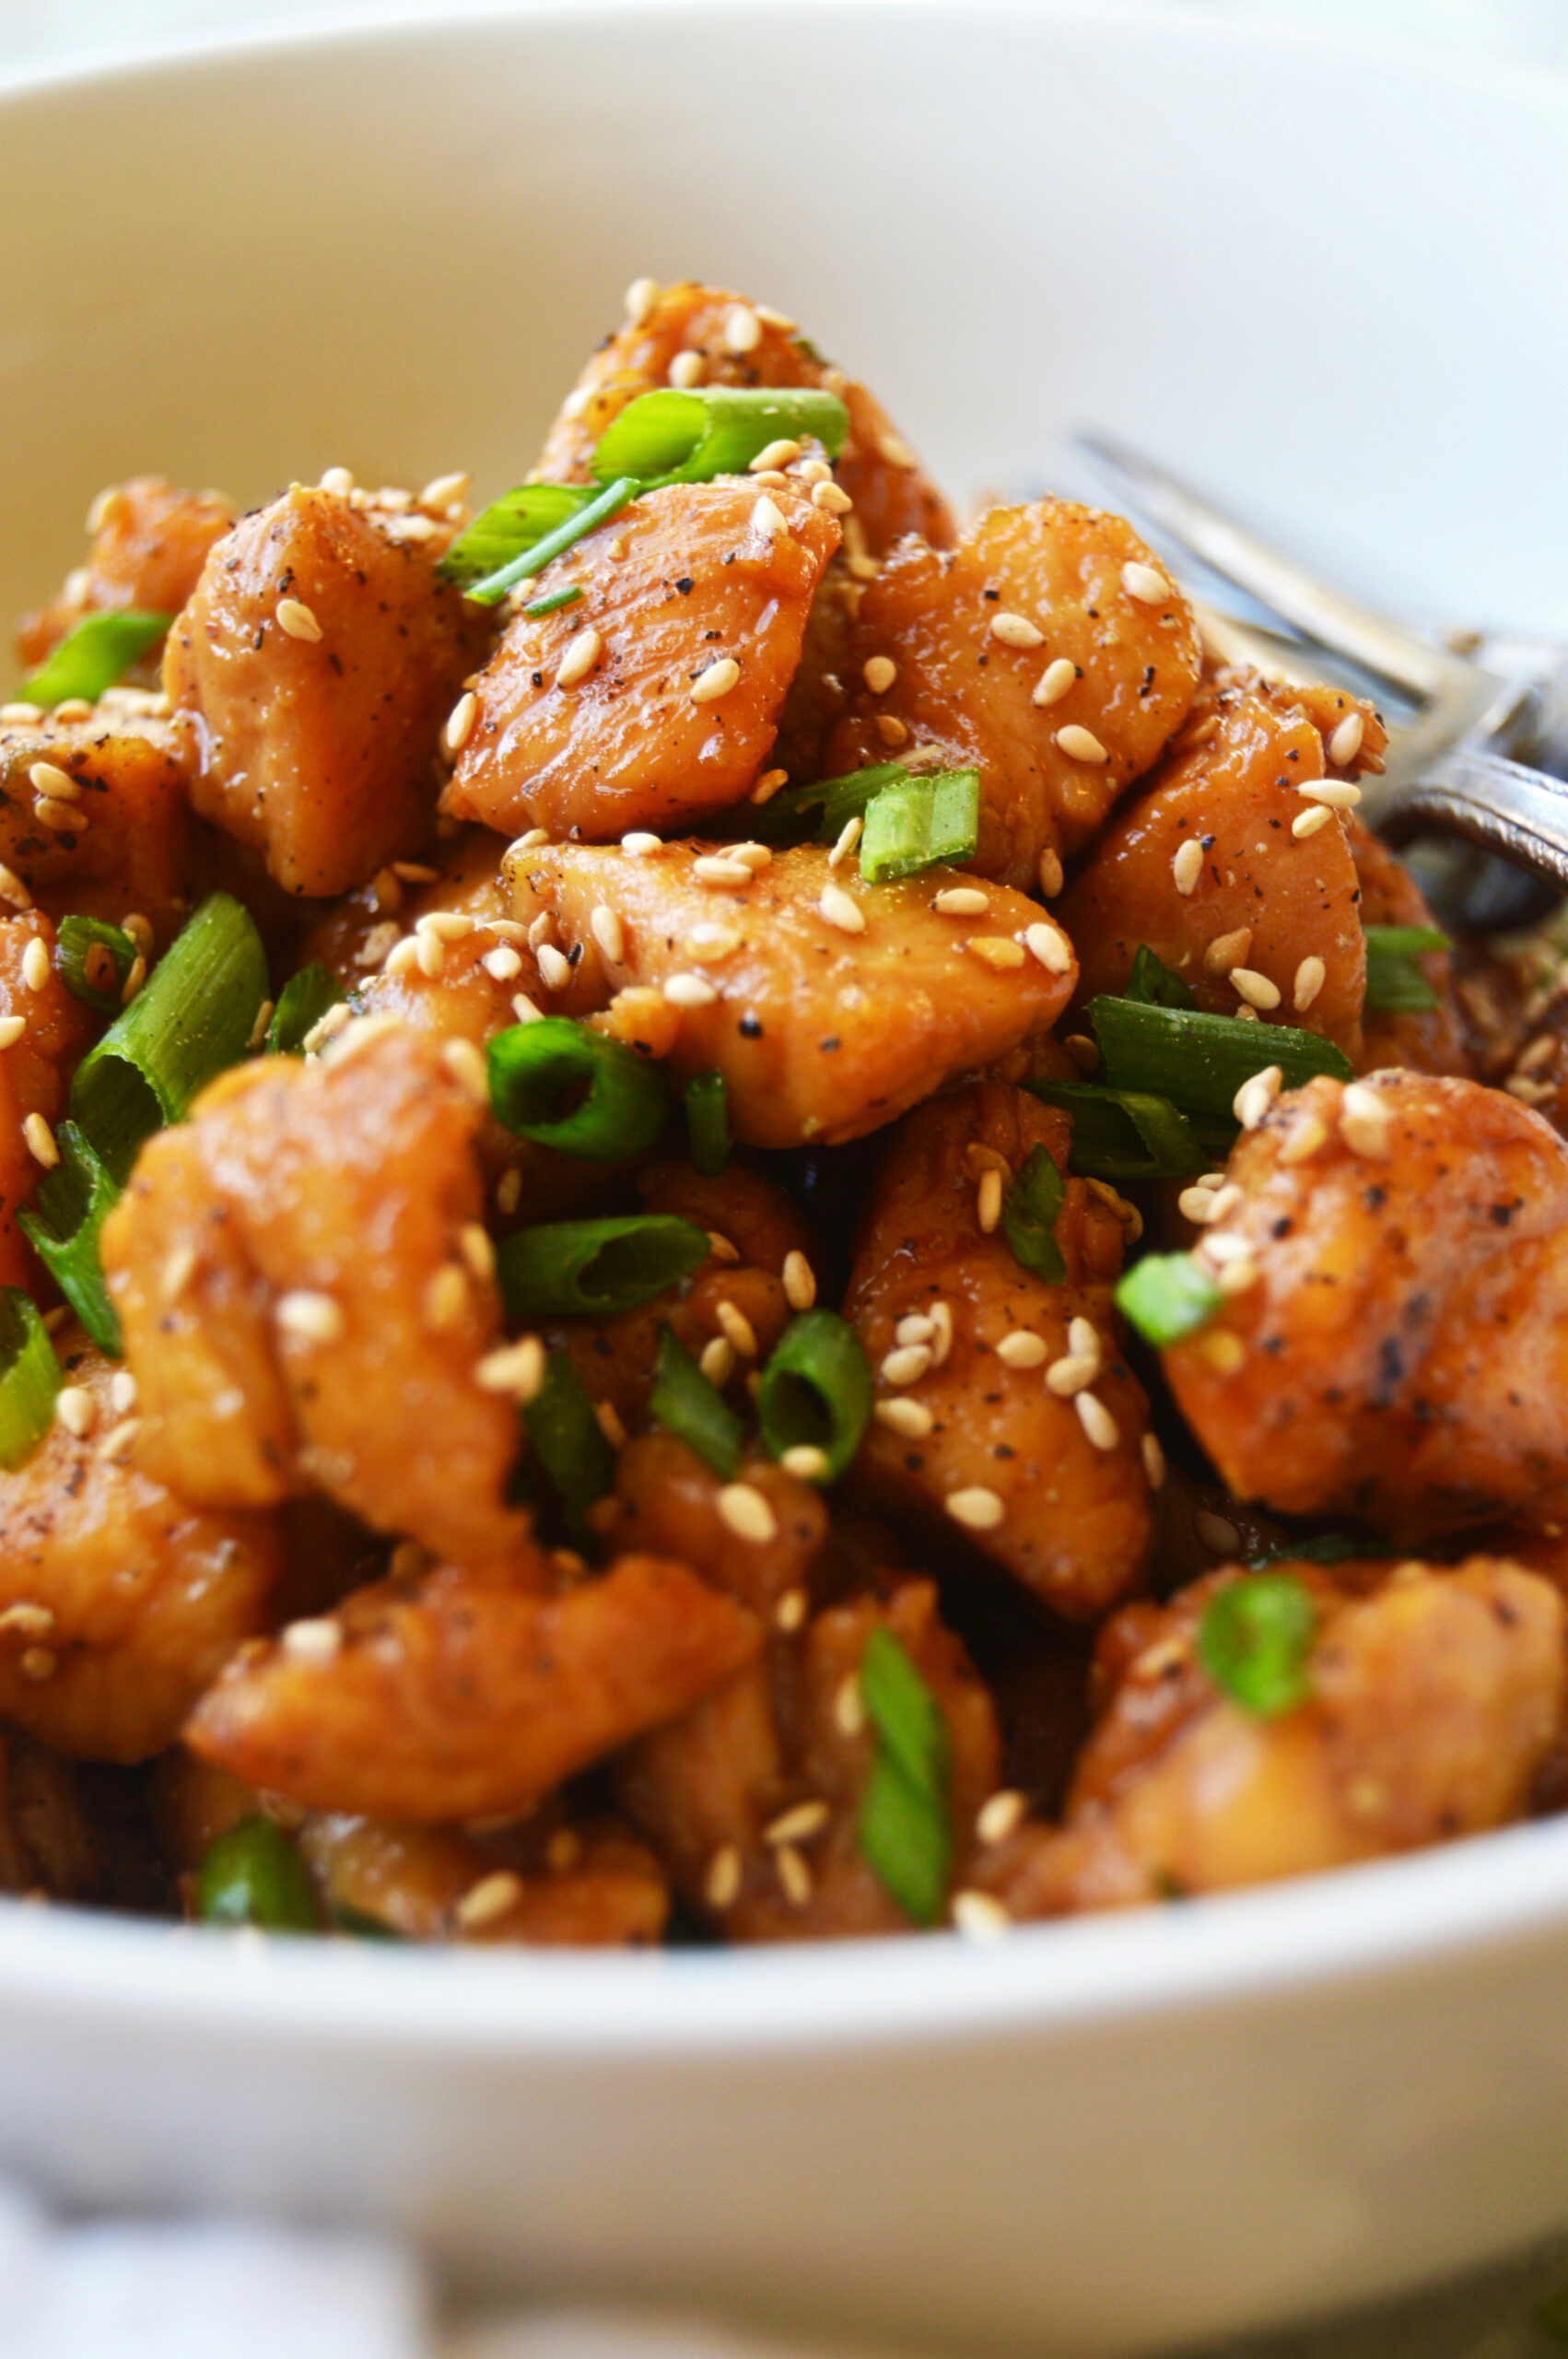 Quick and Simple 5 Ingredient Teriyaki Chicken - food recipes quick simple